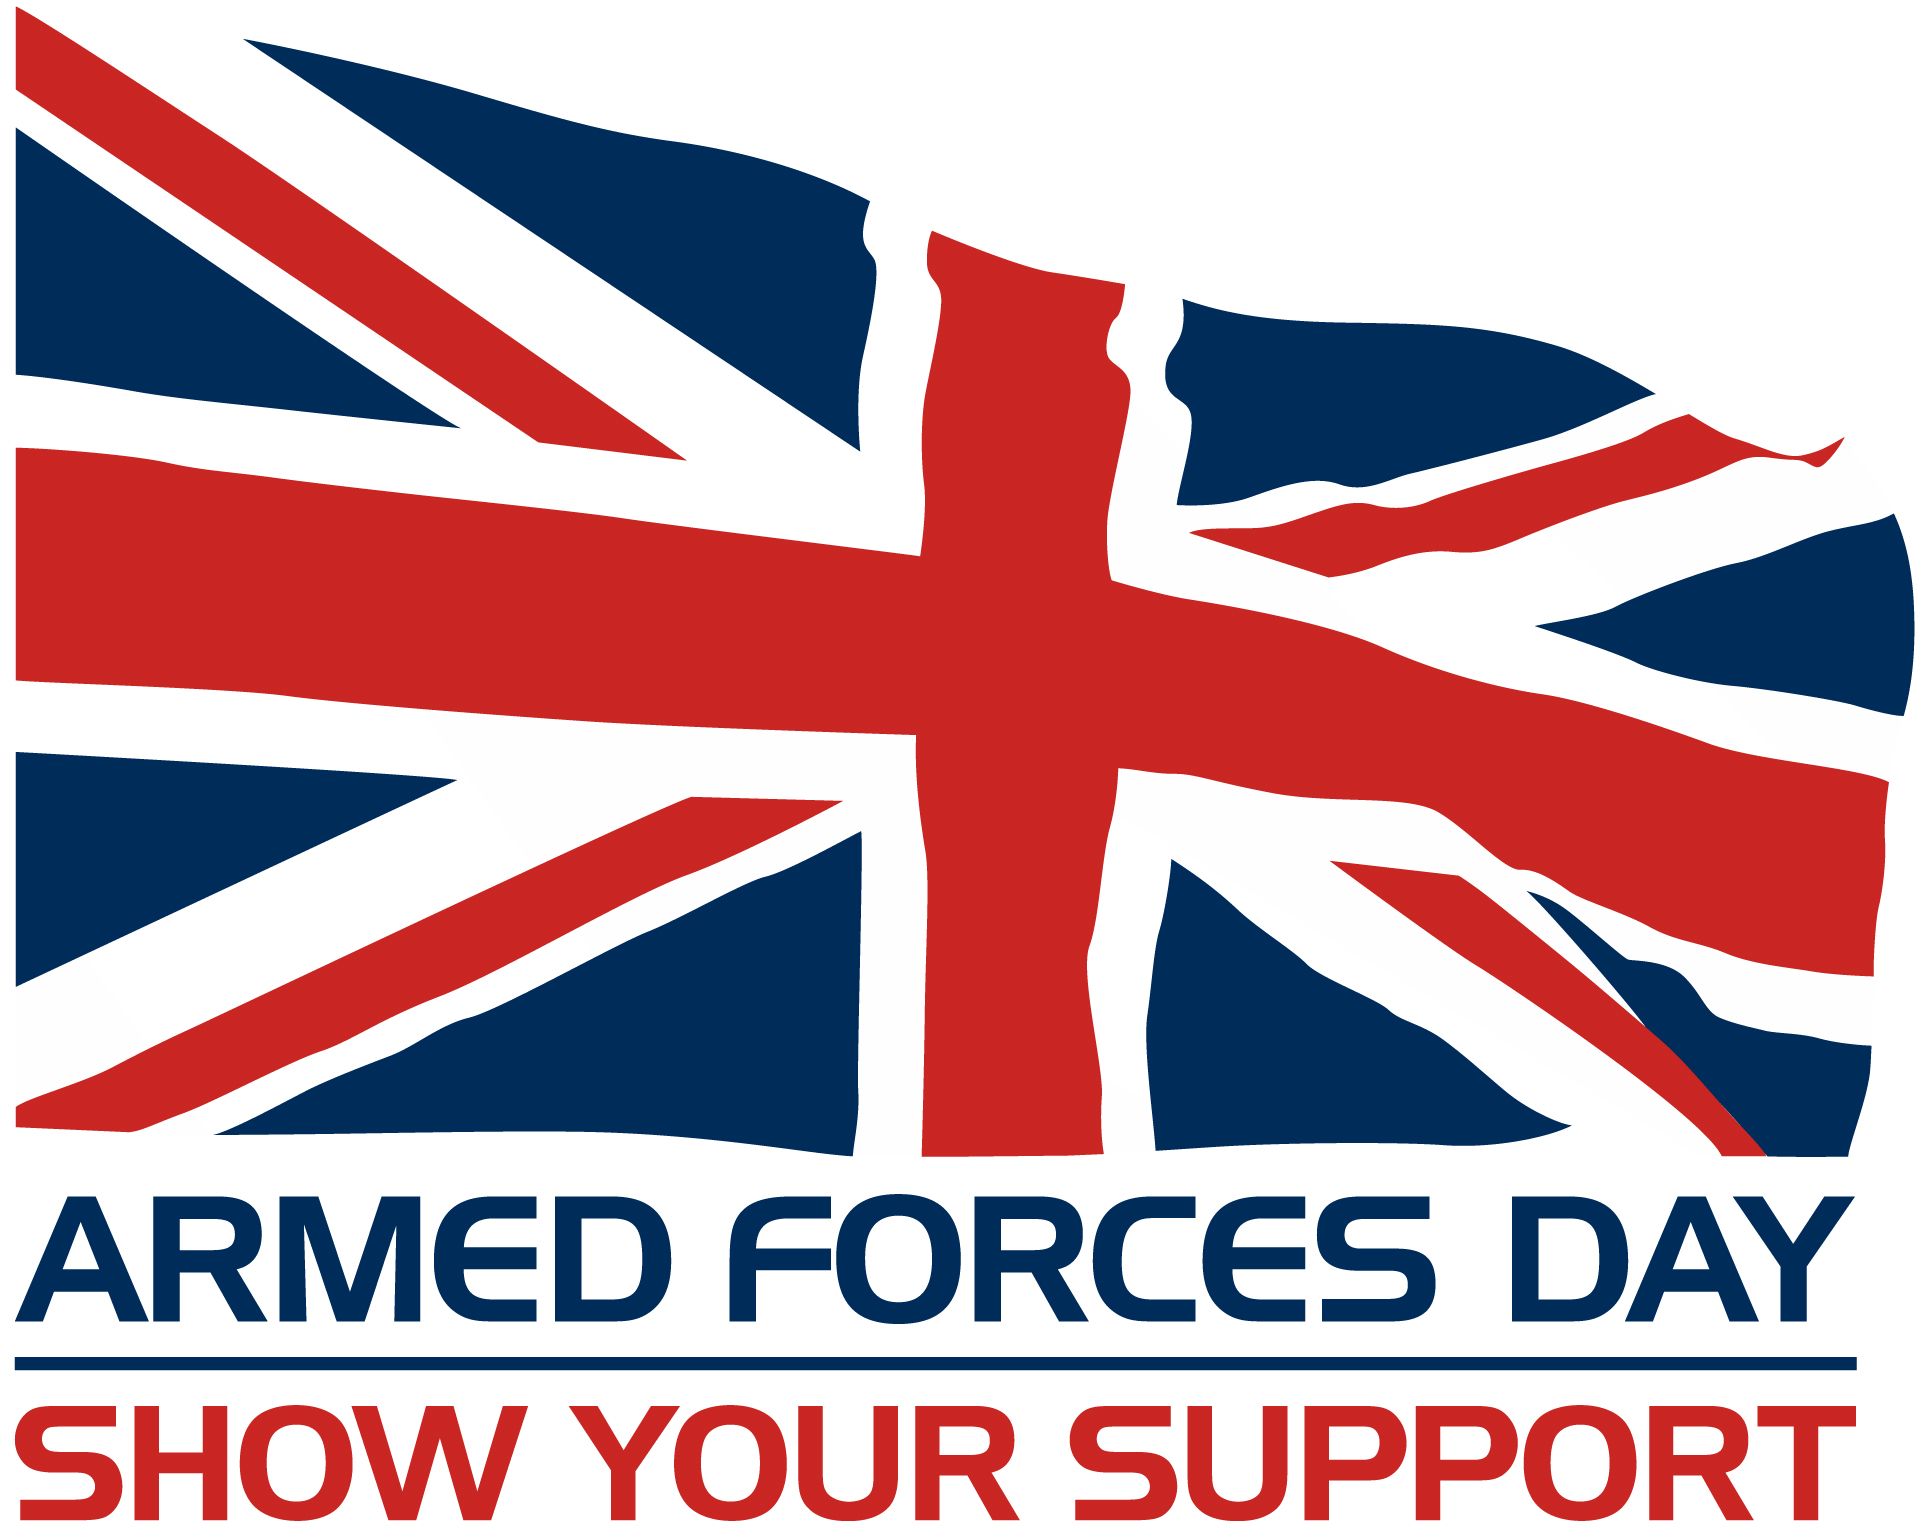 armed-forces-day-logo.jpg